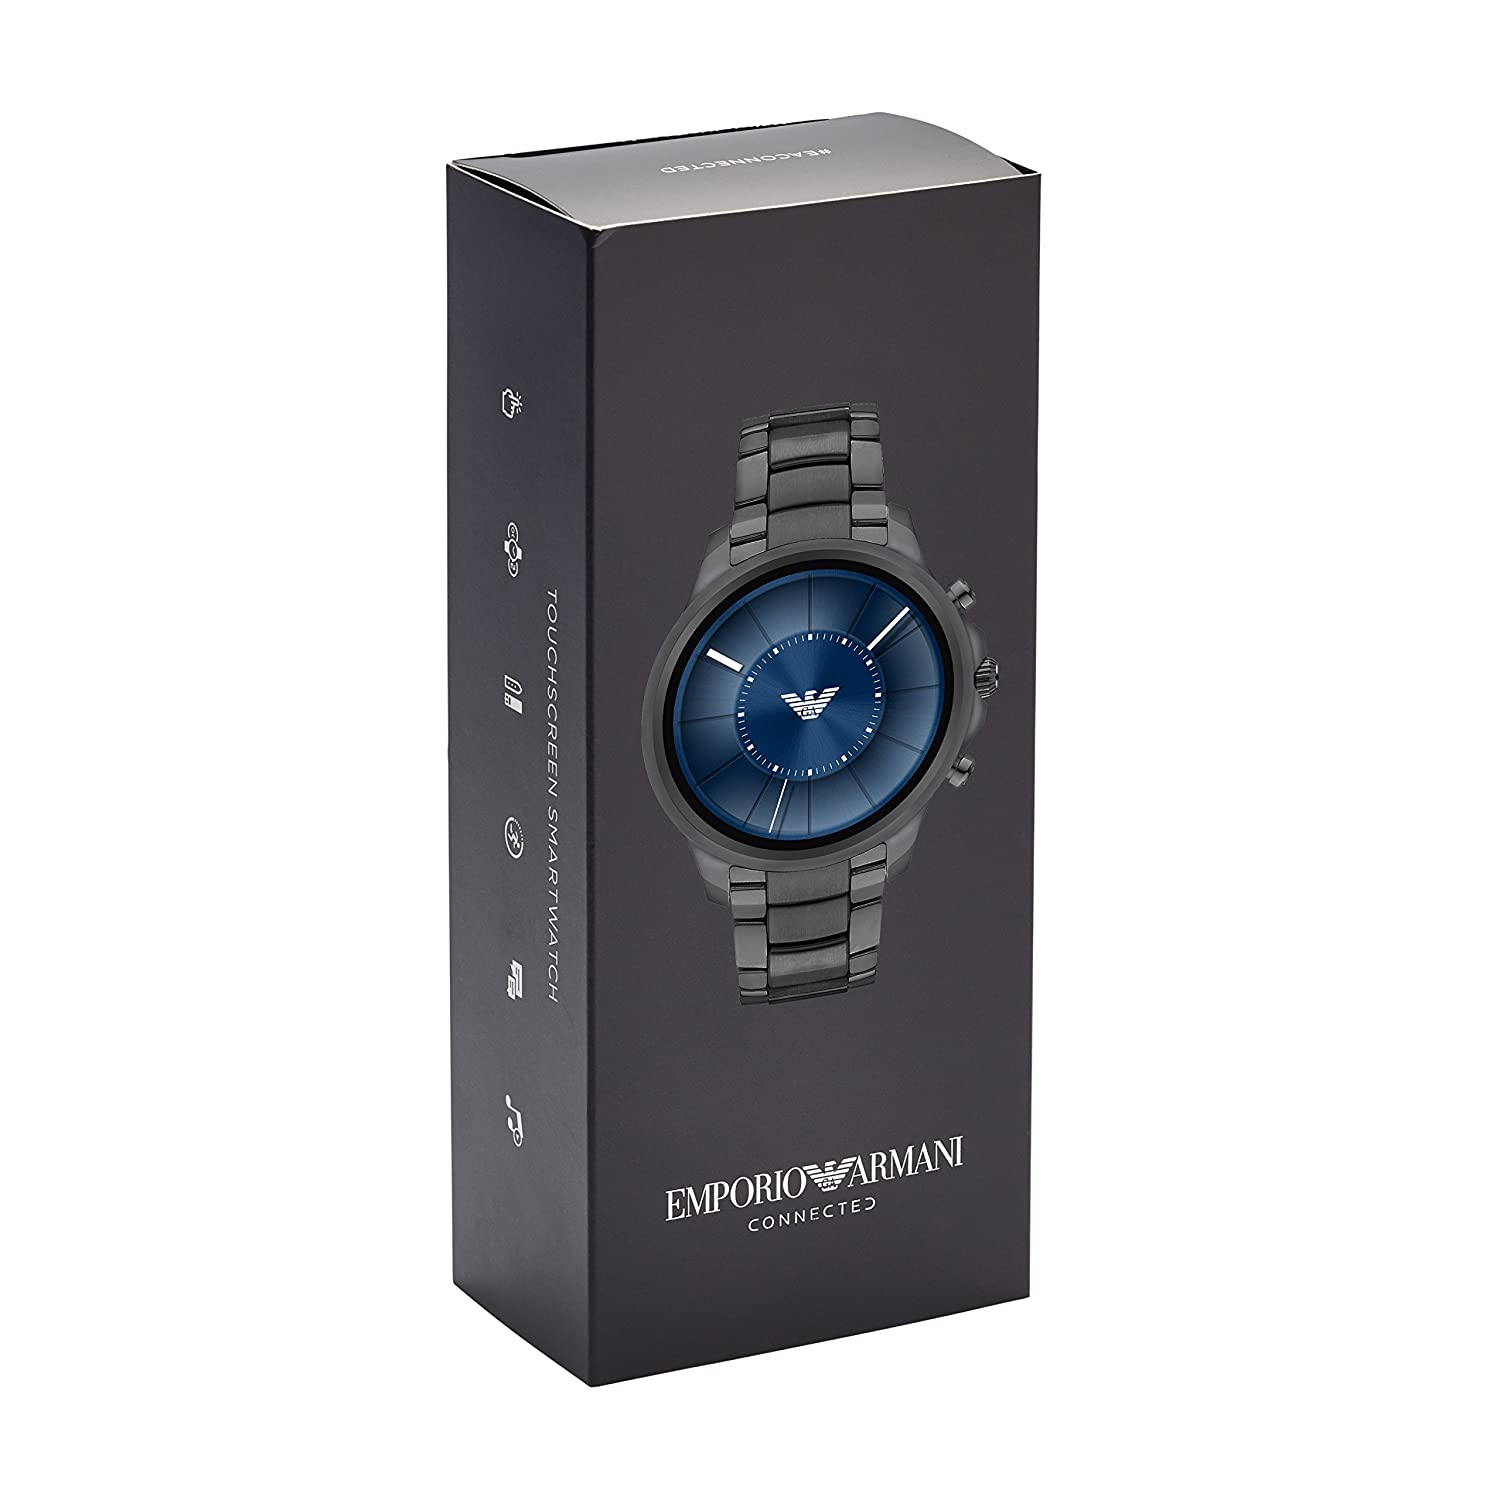 Emporio Armani Mens Smartwatch, Gunmetal Stainless Steel, ART5005